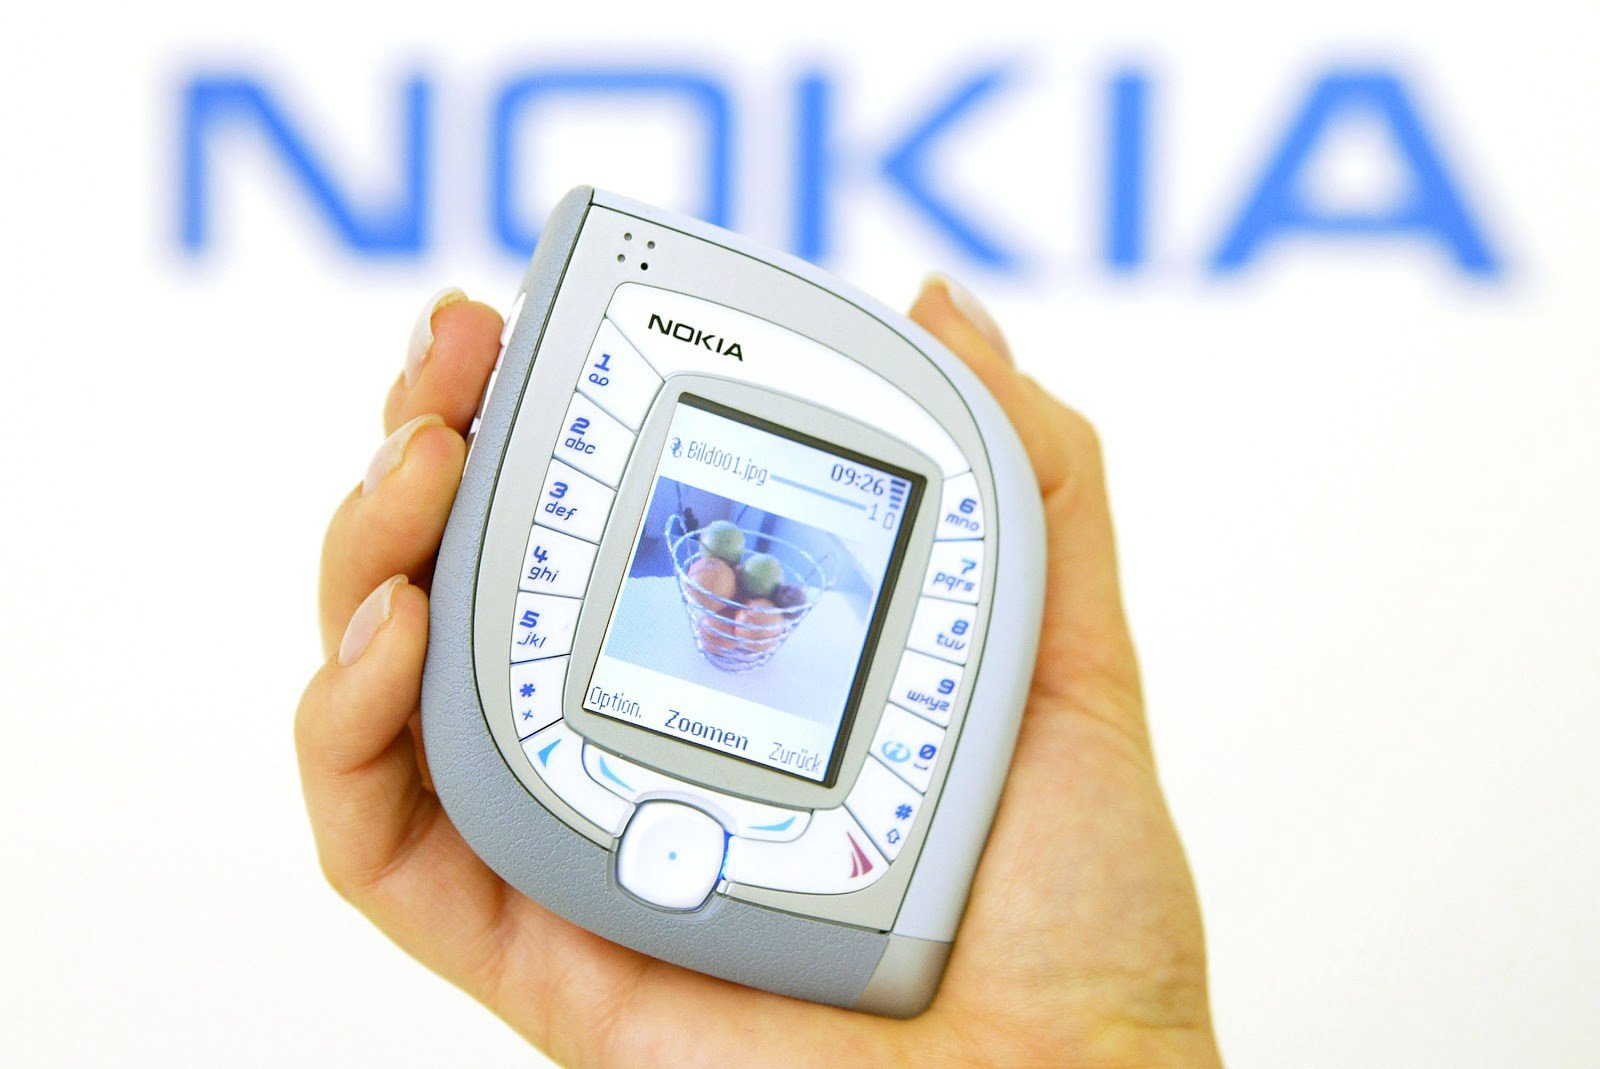 In 2004, Nokia unveiled the 7600, an unconventionally shaped device with interchangeable faceplates marketed to fashion-focused consumers. You wouldn't see something like this today. Photo: Sean Gallup/Getty